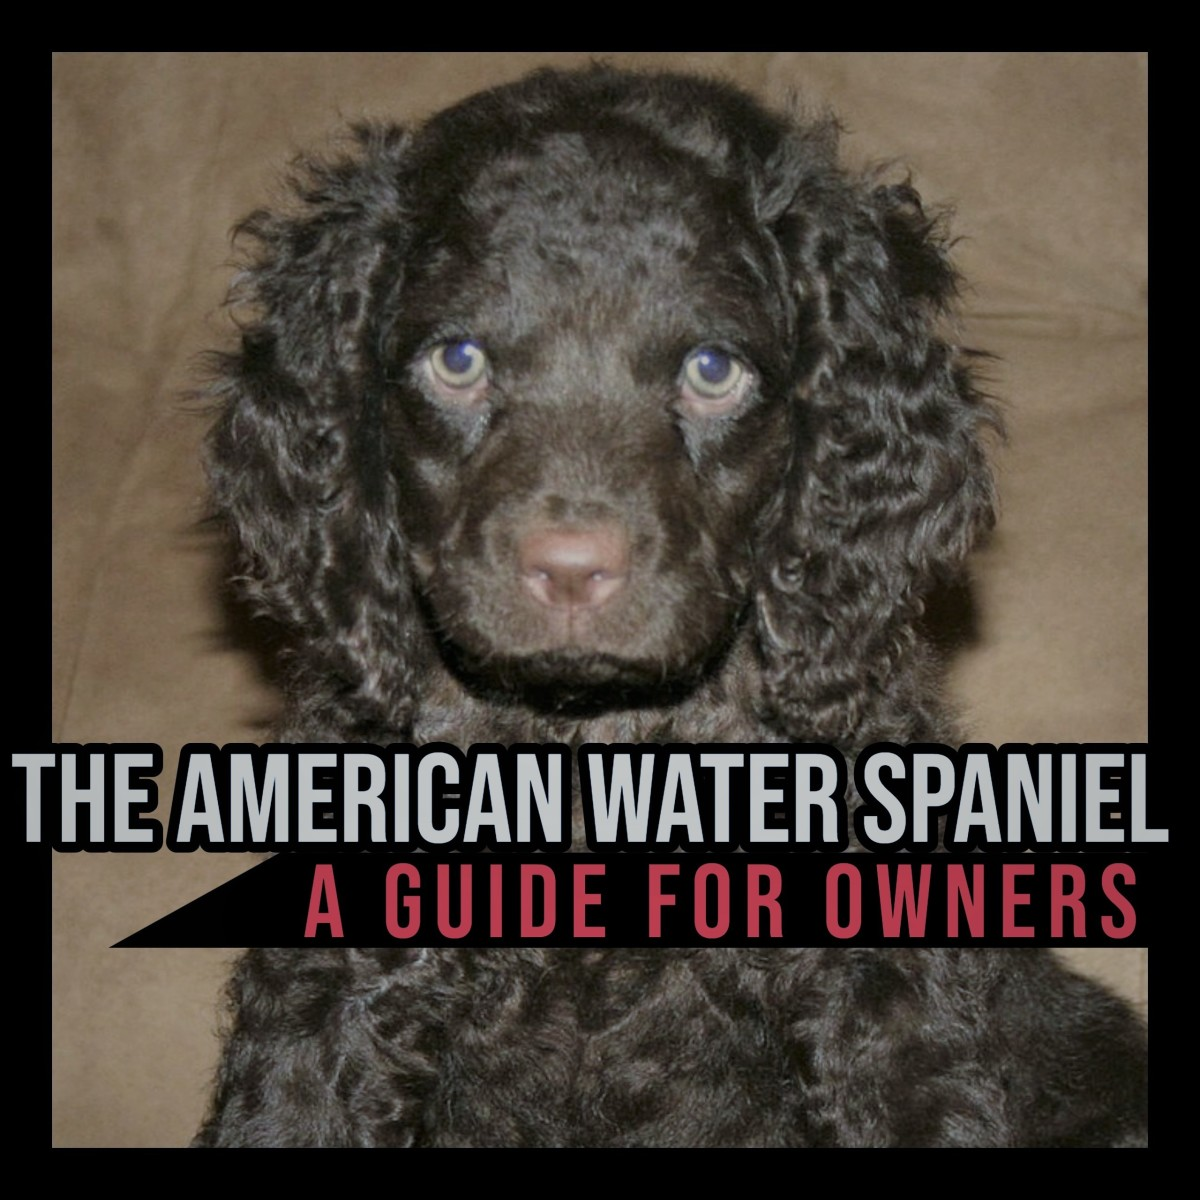 The American Water Spaniel: A Guide for Owners